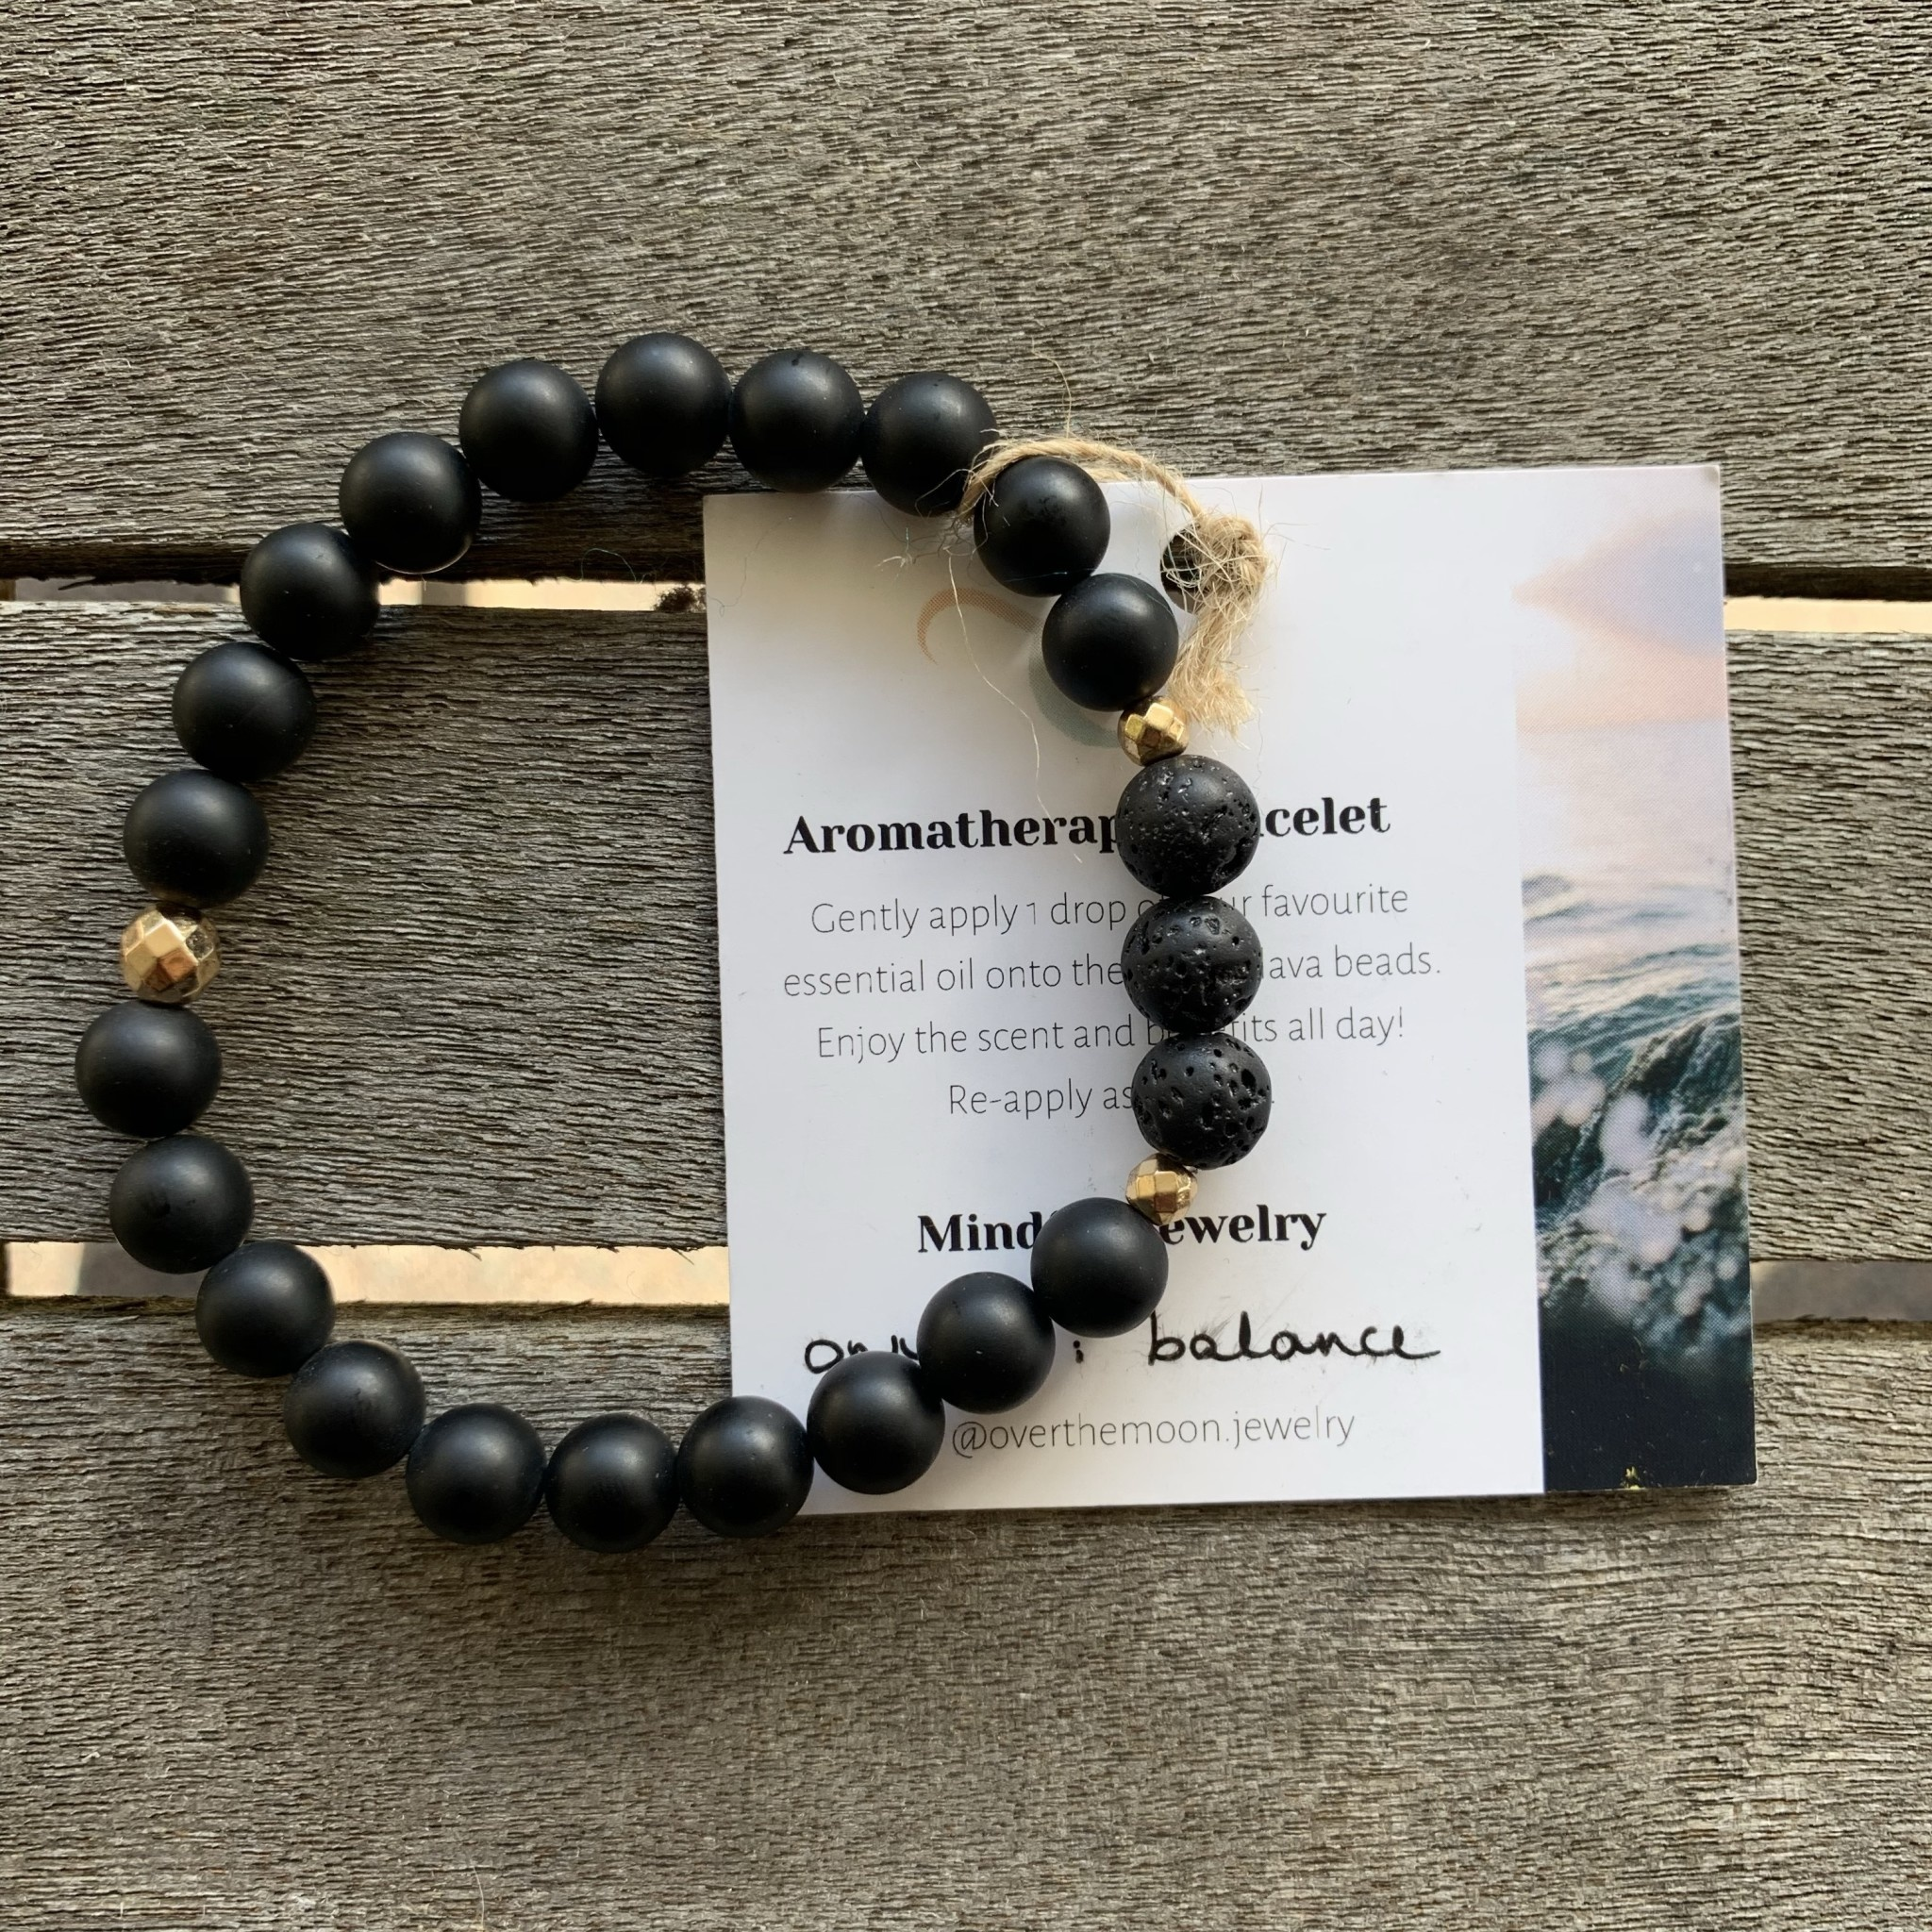 Over The Moon Over The Moon - Balance 8mm Bracelet